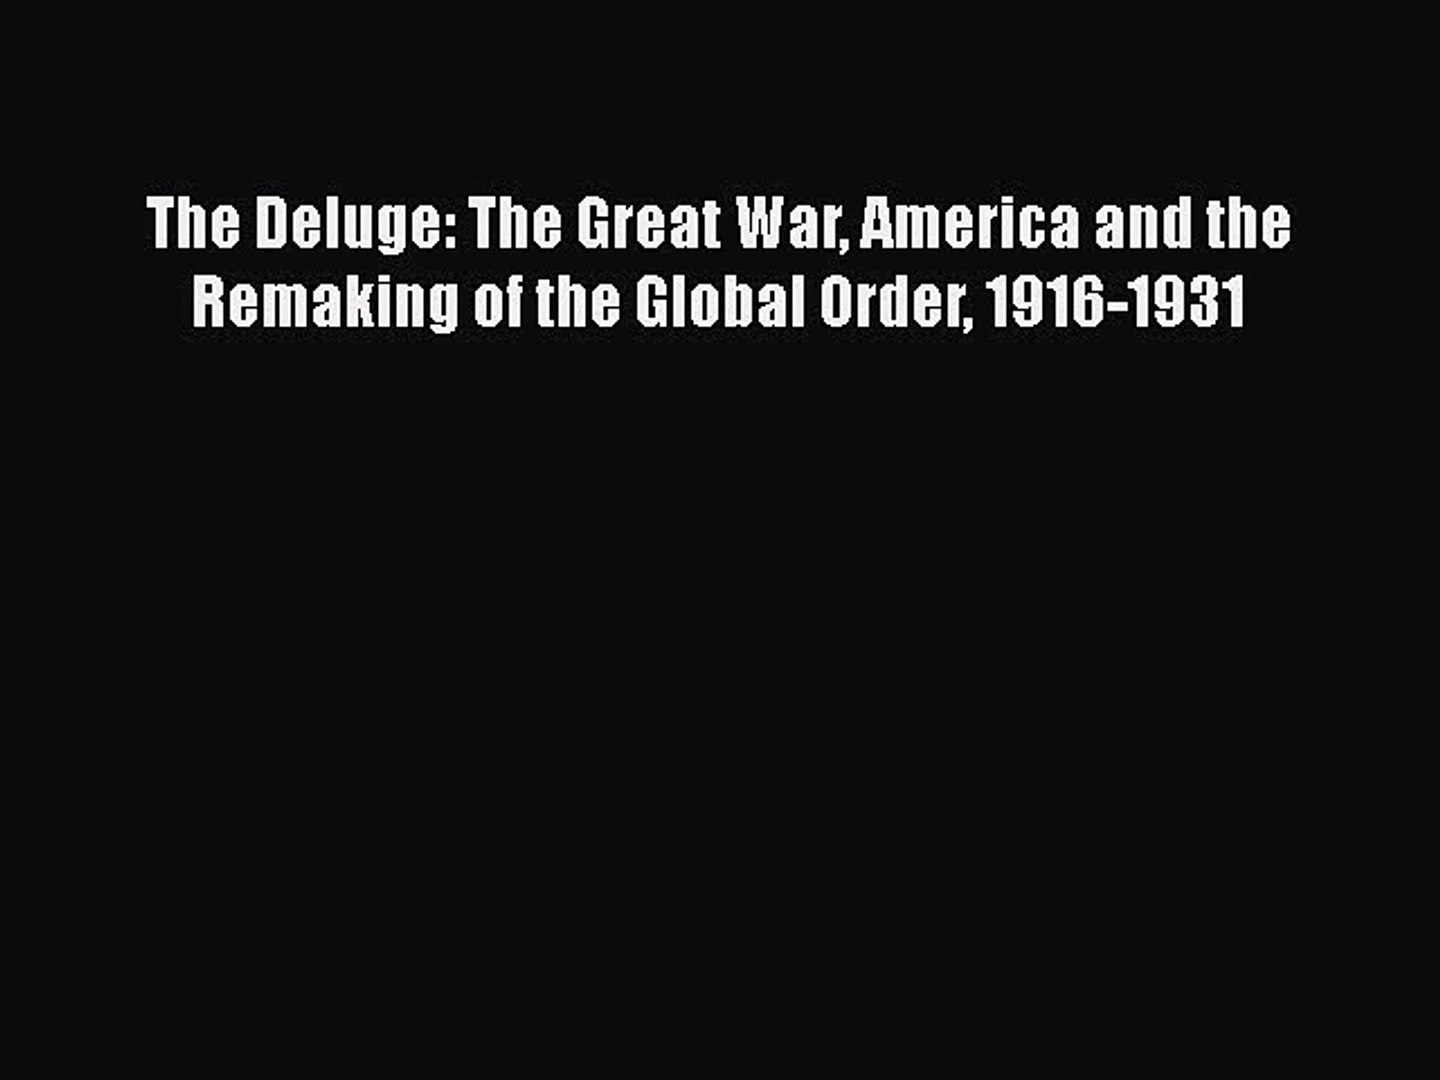 Ebook The Deluge: The Great War America and the Remaking of the Global Order 1916-1931 Read